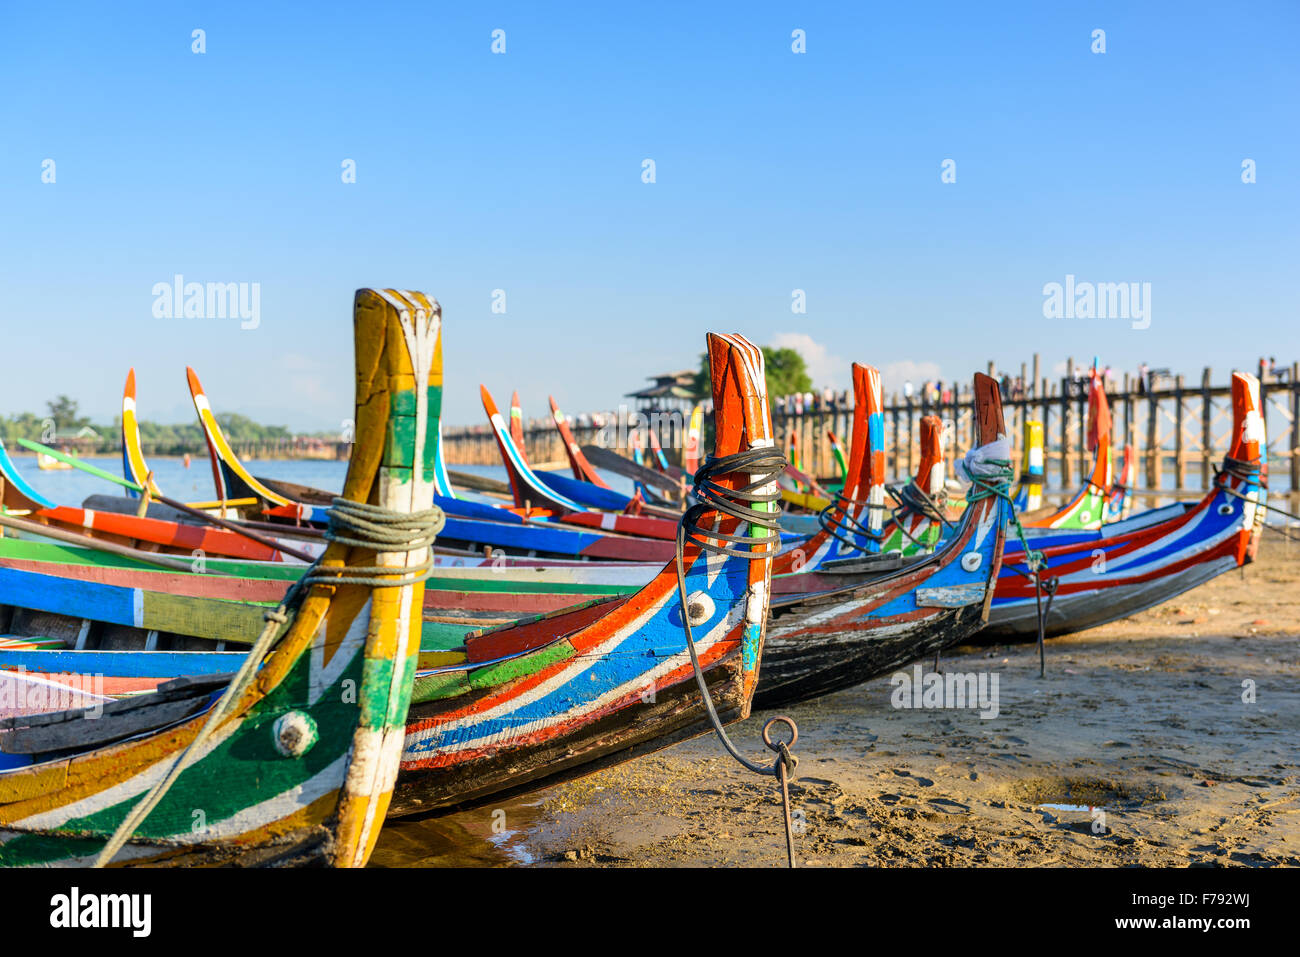 Mandalay, Myanmar boats on the Taungthaman Lake in front of U Bein Bridge. - Stock Image